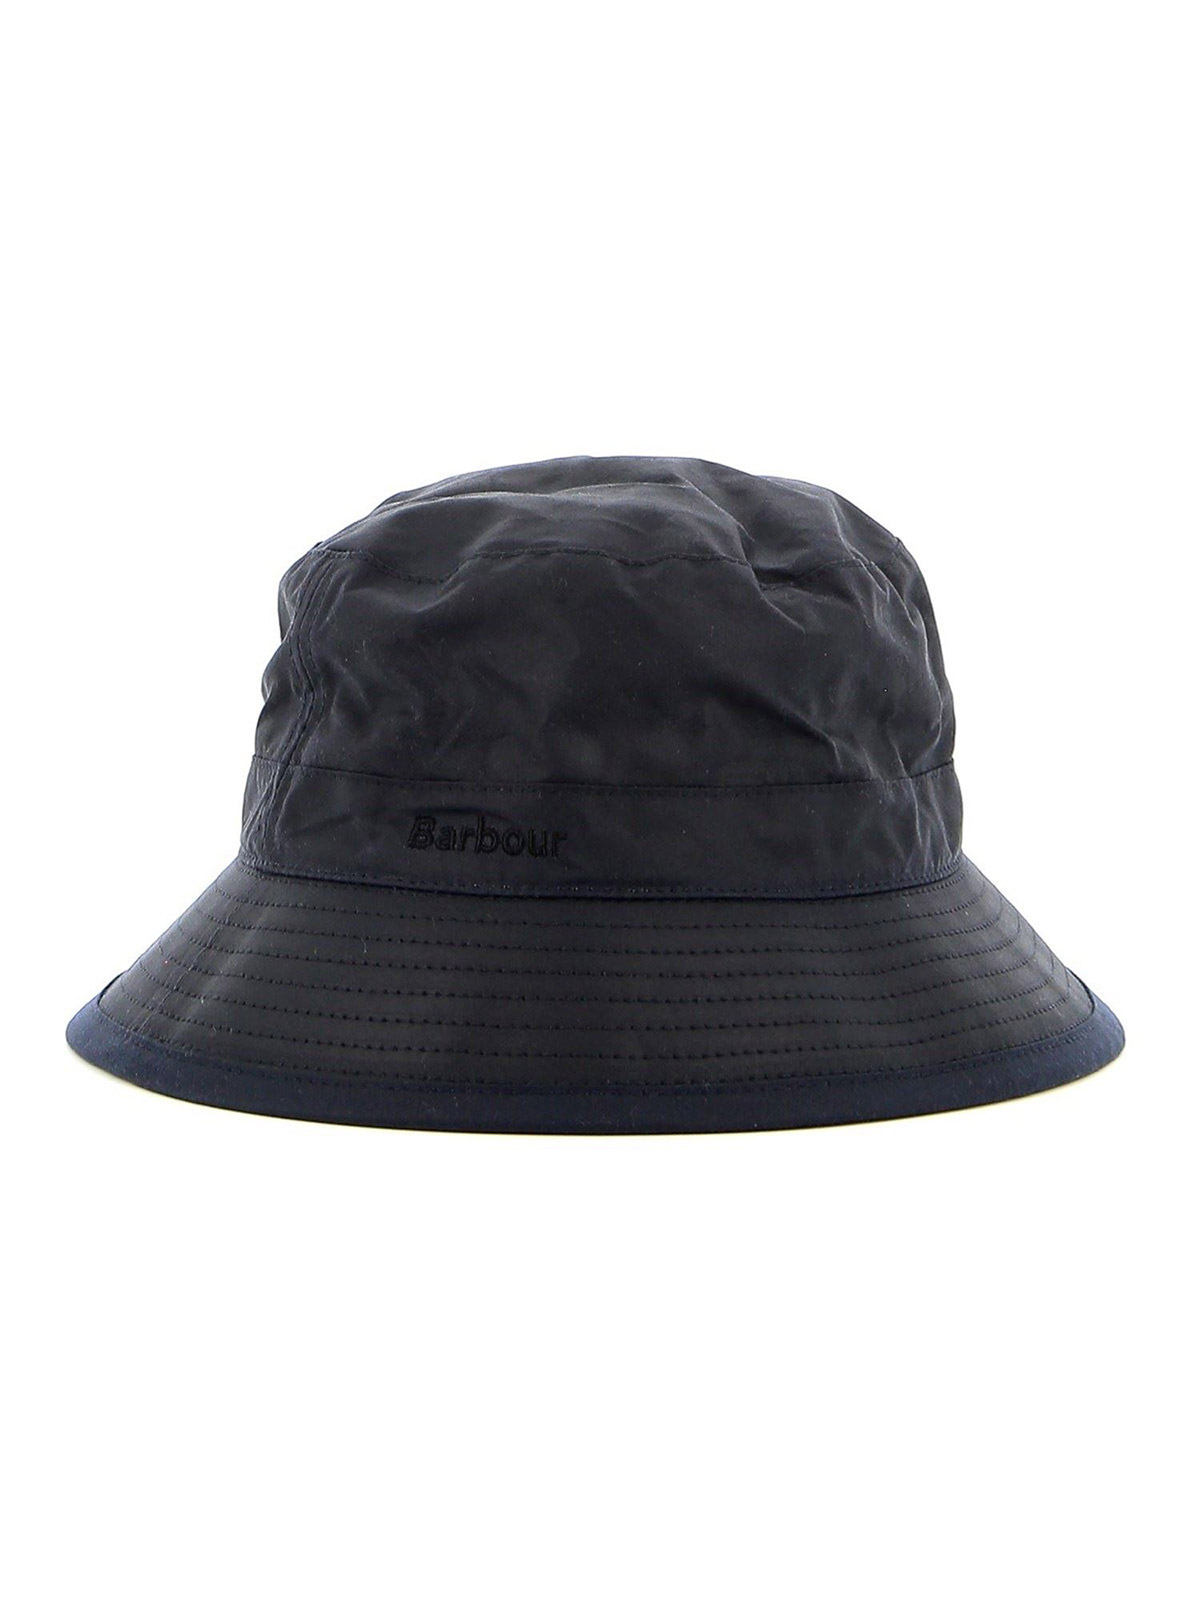 Picture of Barbour   Hat Wax Sport Hat